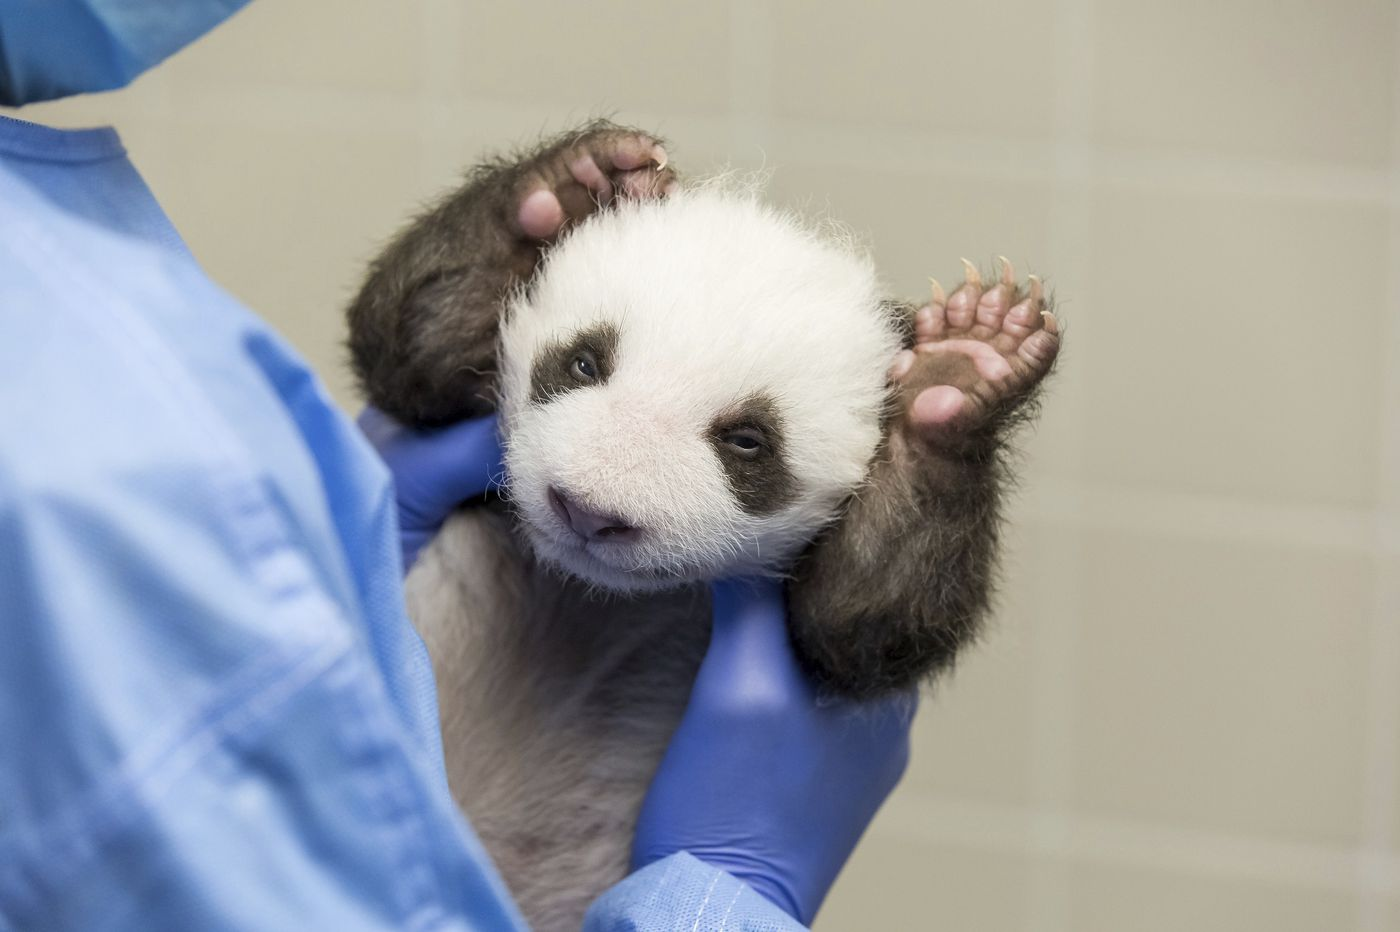 Berlin zoo's panda cubs take 1st glimpse of the world